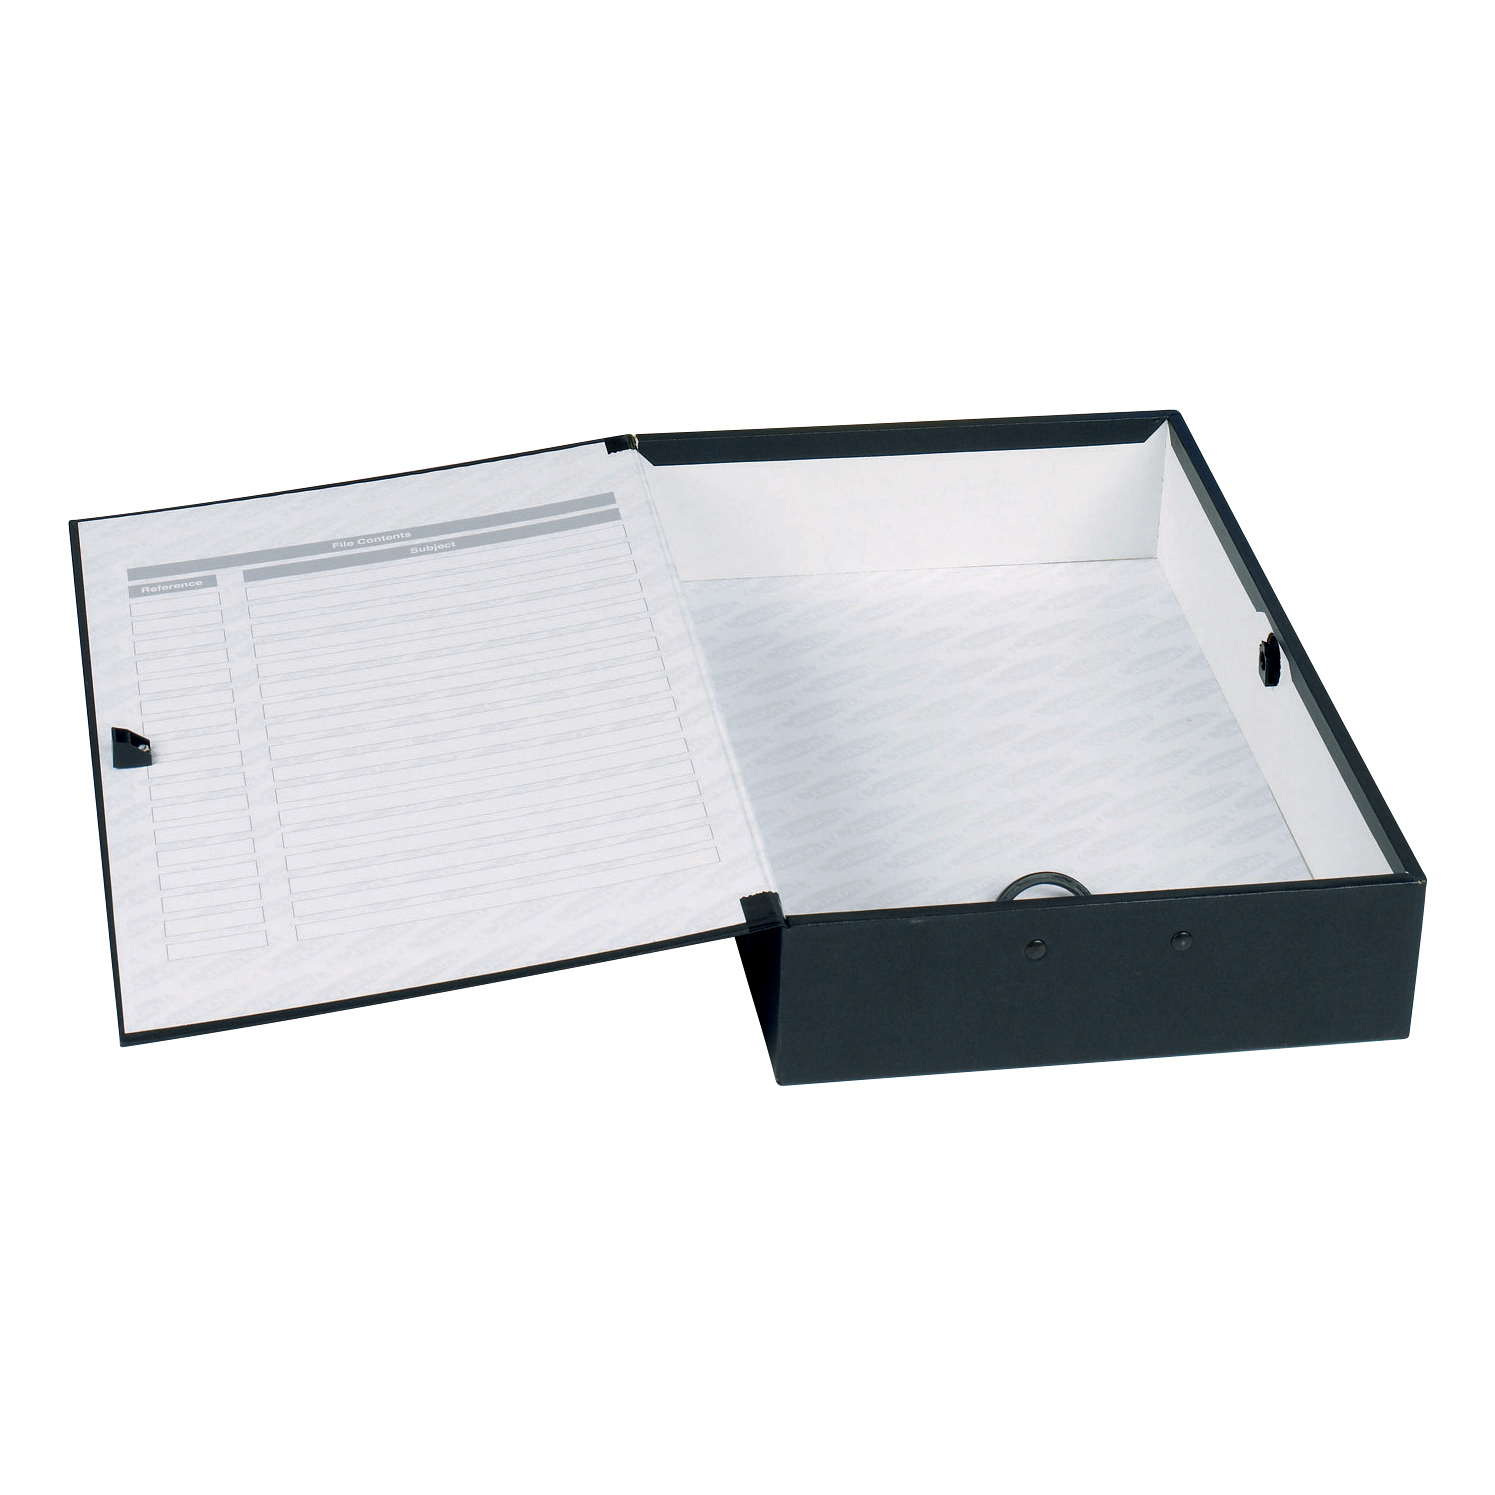 Concord Classic Box File 75mm Spine Foolscap Black Ref C1282 Pack 5